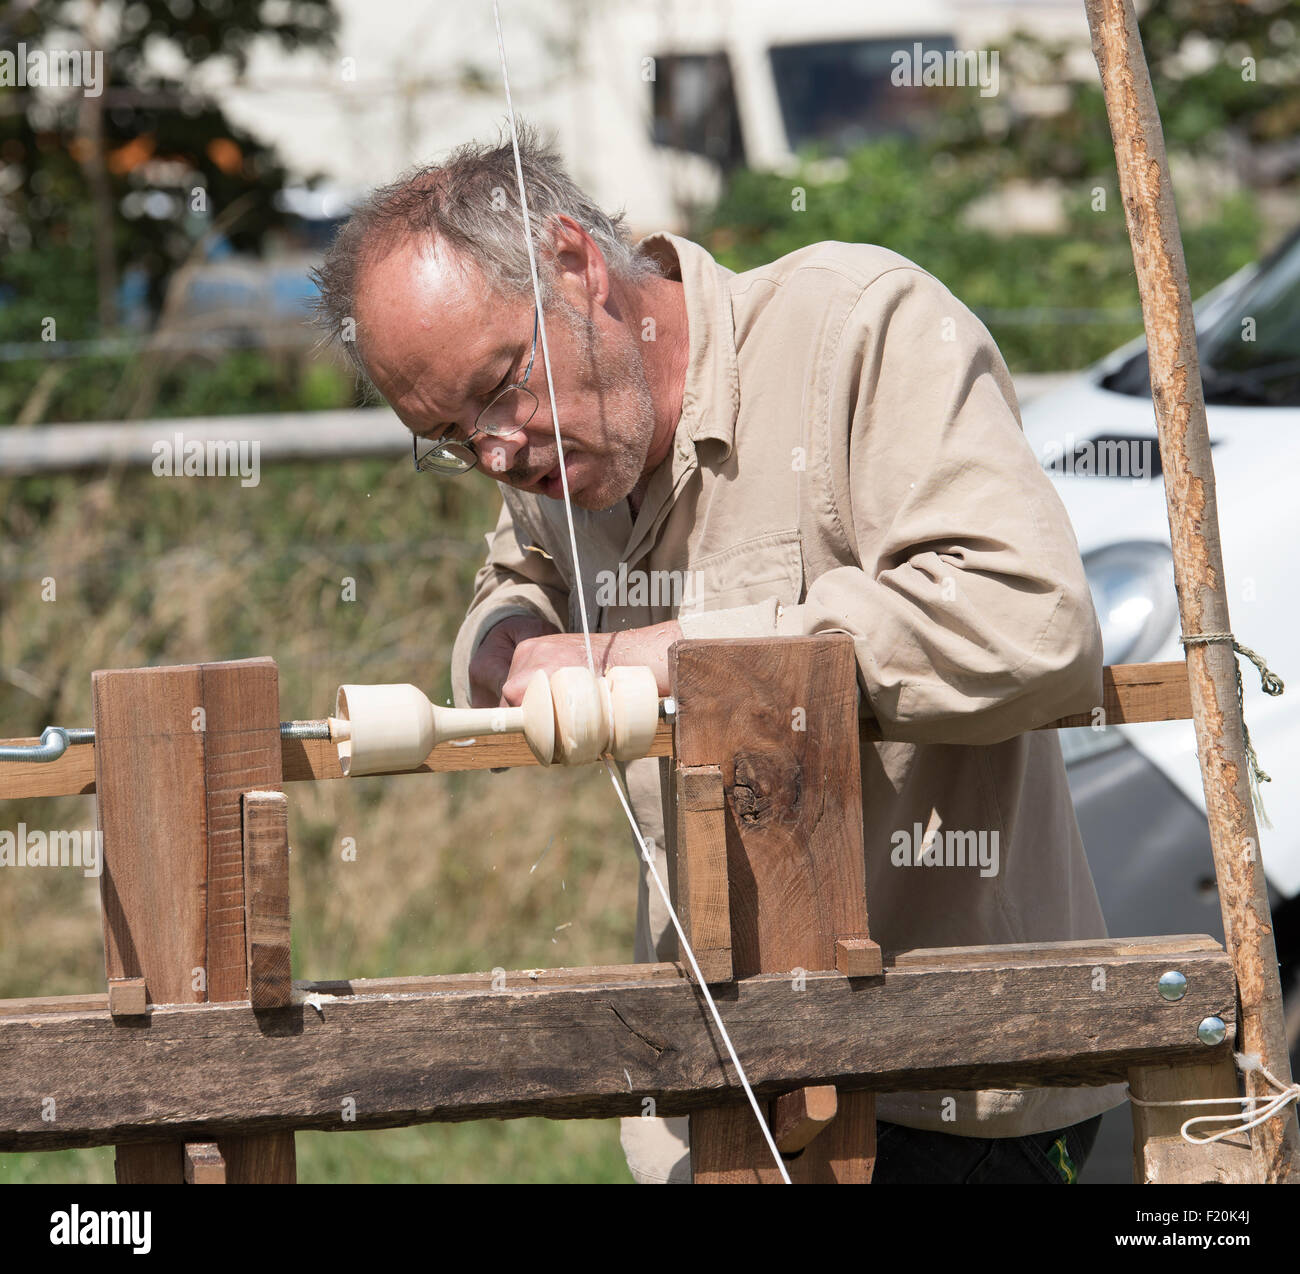 Wood turning demonstration at Steam rally and Country fair Stow cum Quy Cambridgeshire England 2015 Stock Photo